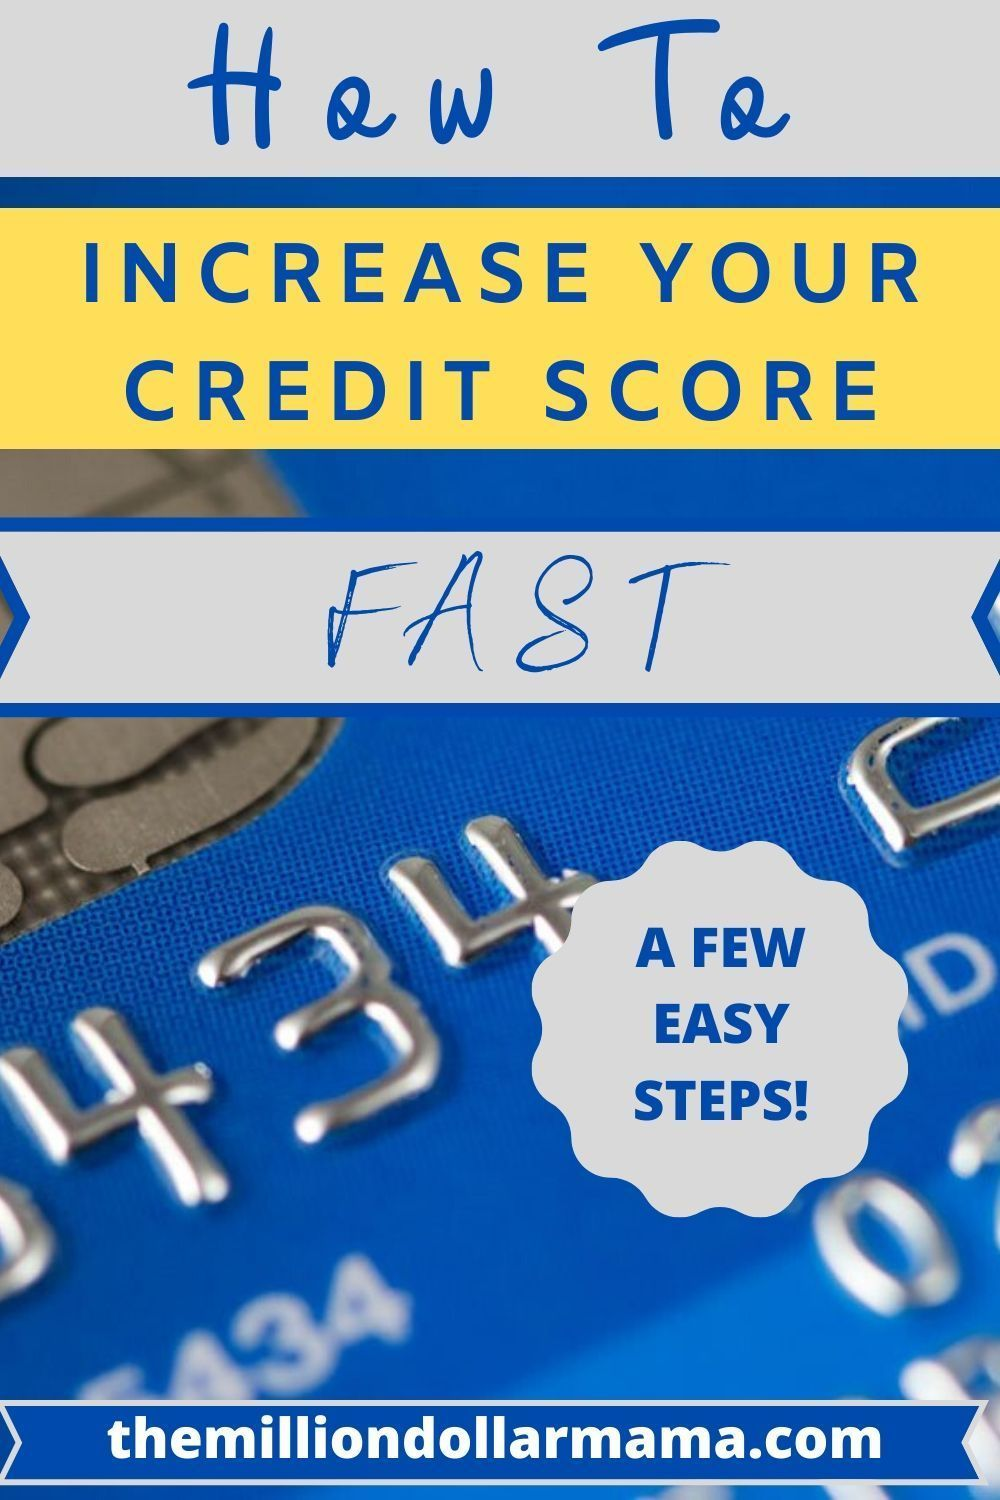 How To Increase Your Credit Score With No Credit History In 2020 Credit Score Improve Your Credit Score Credit History